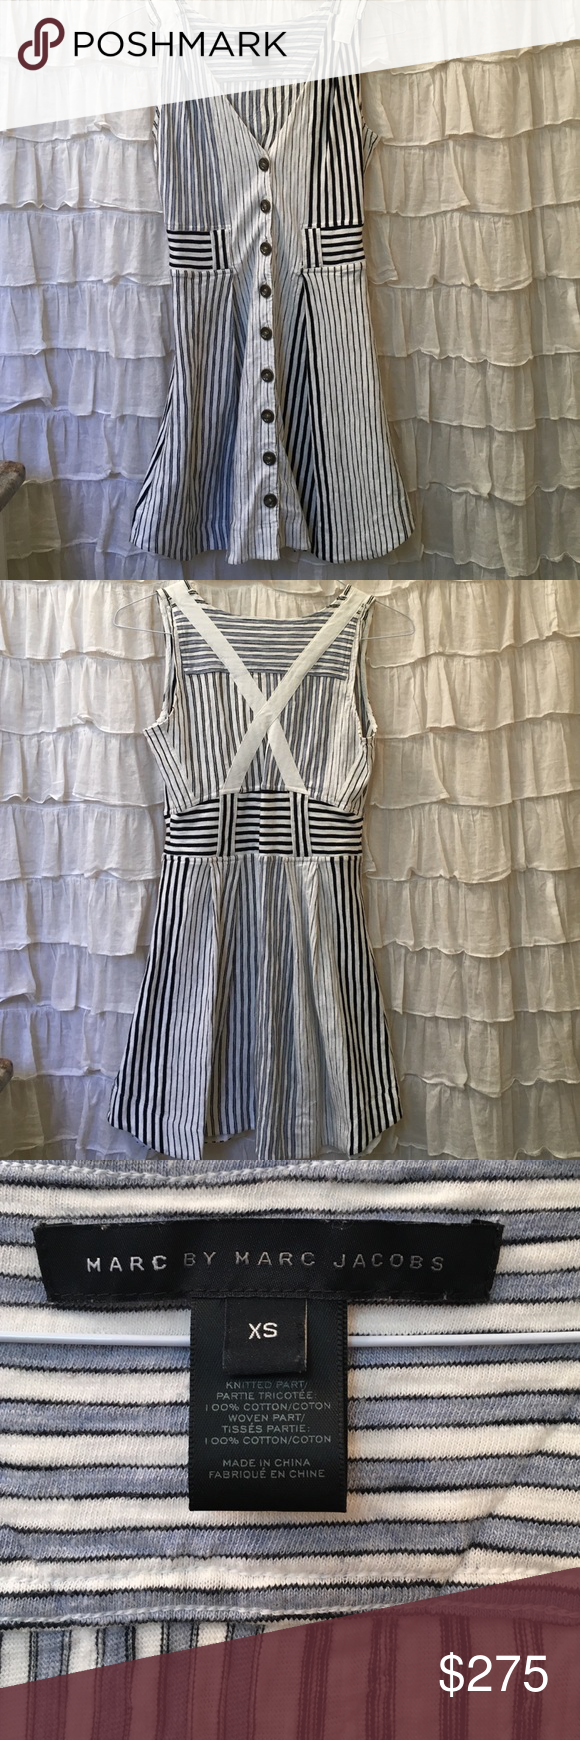 Marc Jacobs pleated dress Marc Jacobs pleated summer dress! Size Xs Marc Jacobs Dresses Midi